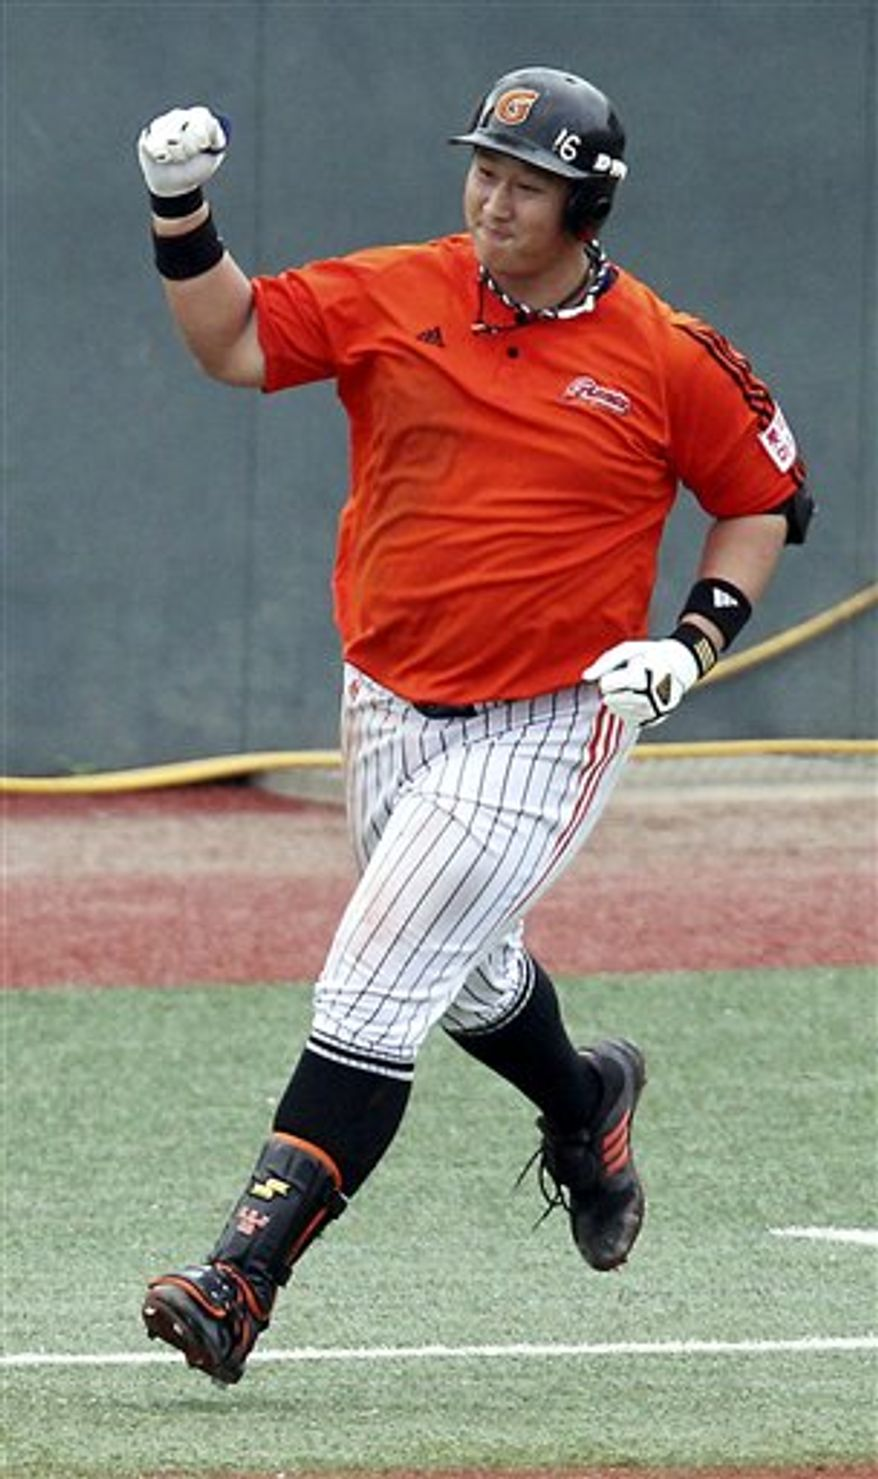 South Korean slugger Lotte Giants' Lee Dae-ho hits a three-run home run as a world record with 9 consecutive-game home runs in the second inning of a professional baseball game against the Kia Tigers in Gwangju, south of Seoul, South Korea, Saturday, Aug. 14, 2010.  (AP Photo/ Yonhap, Hyung Min-woo)